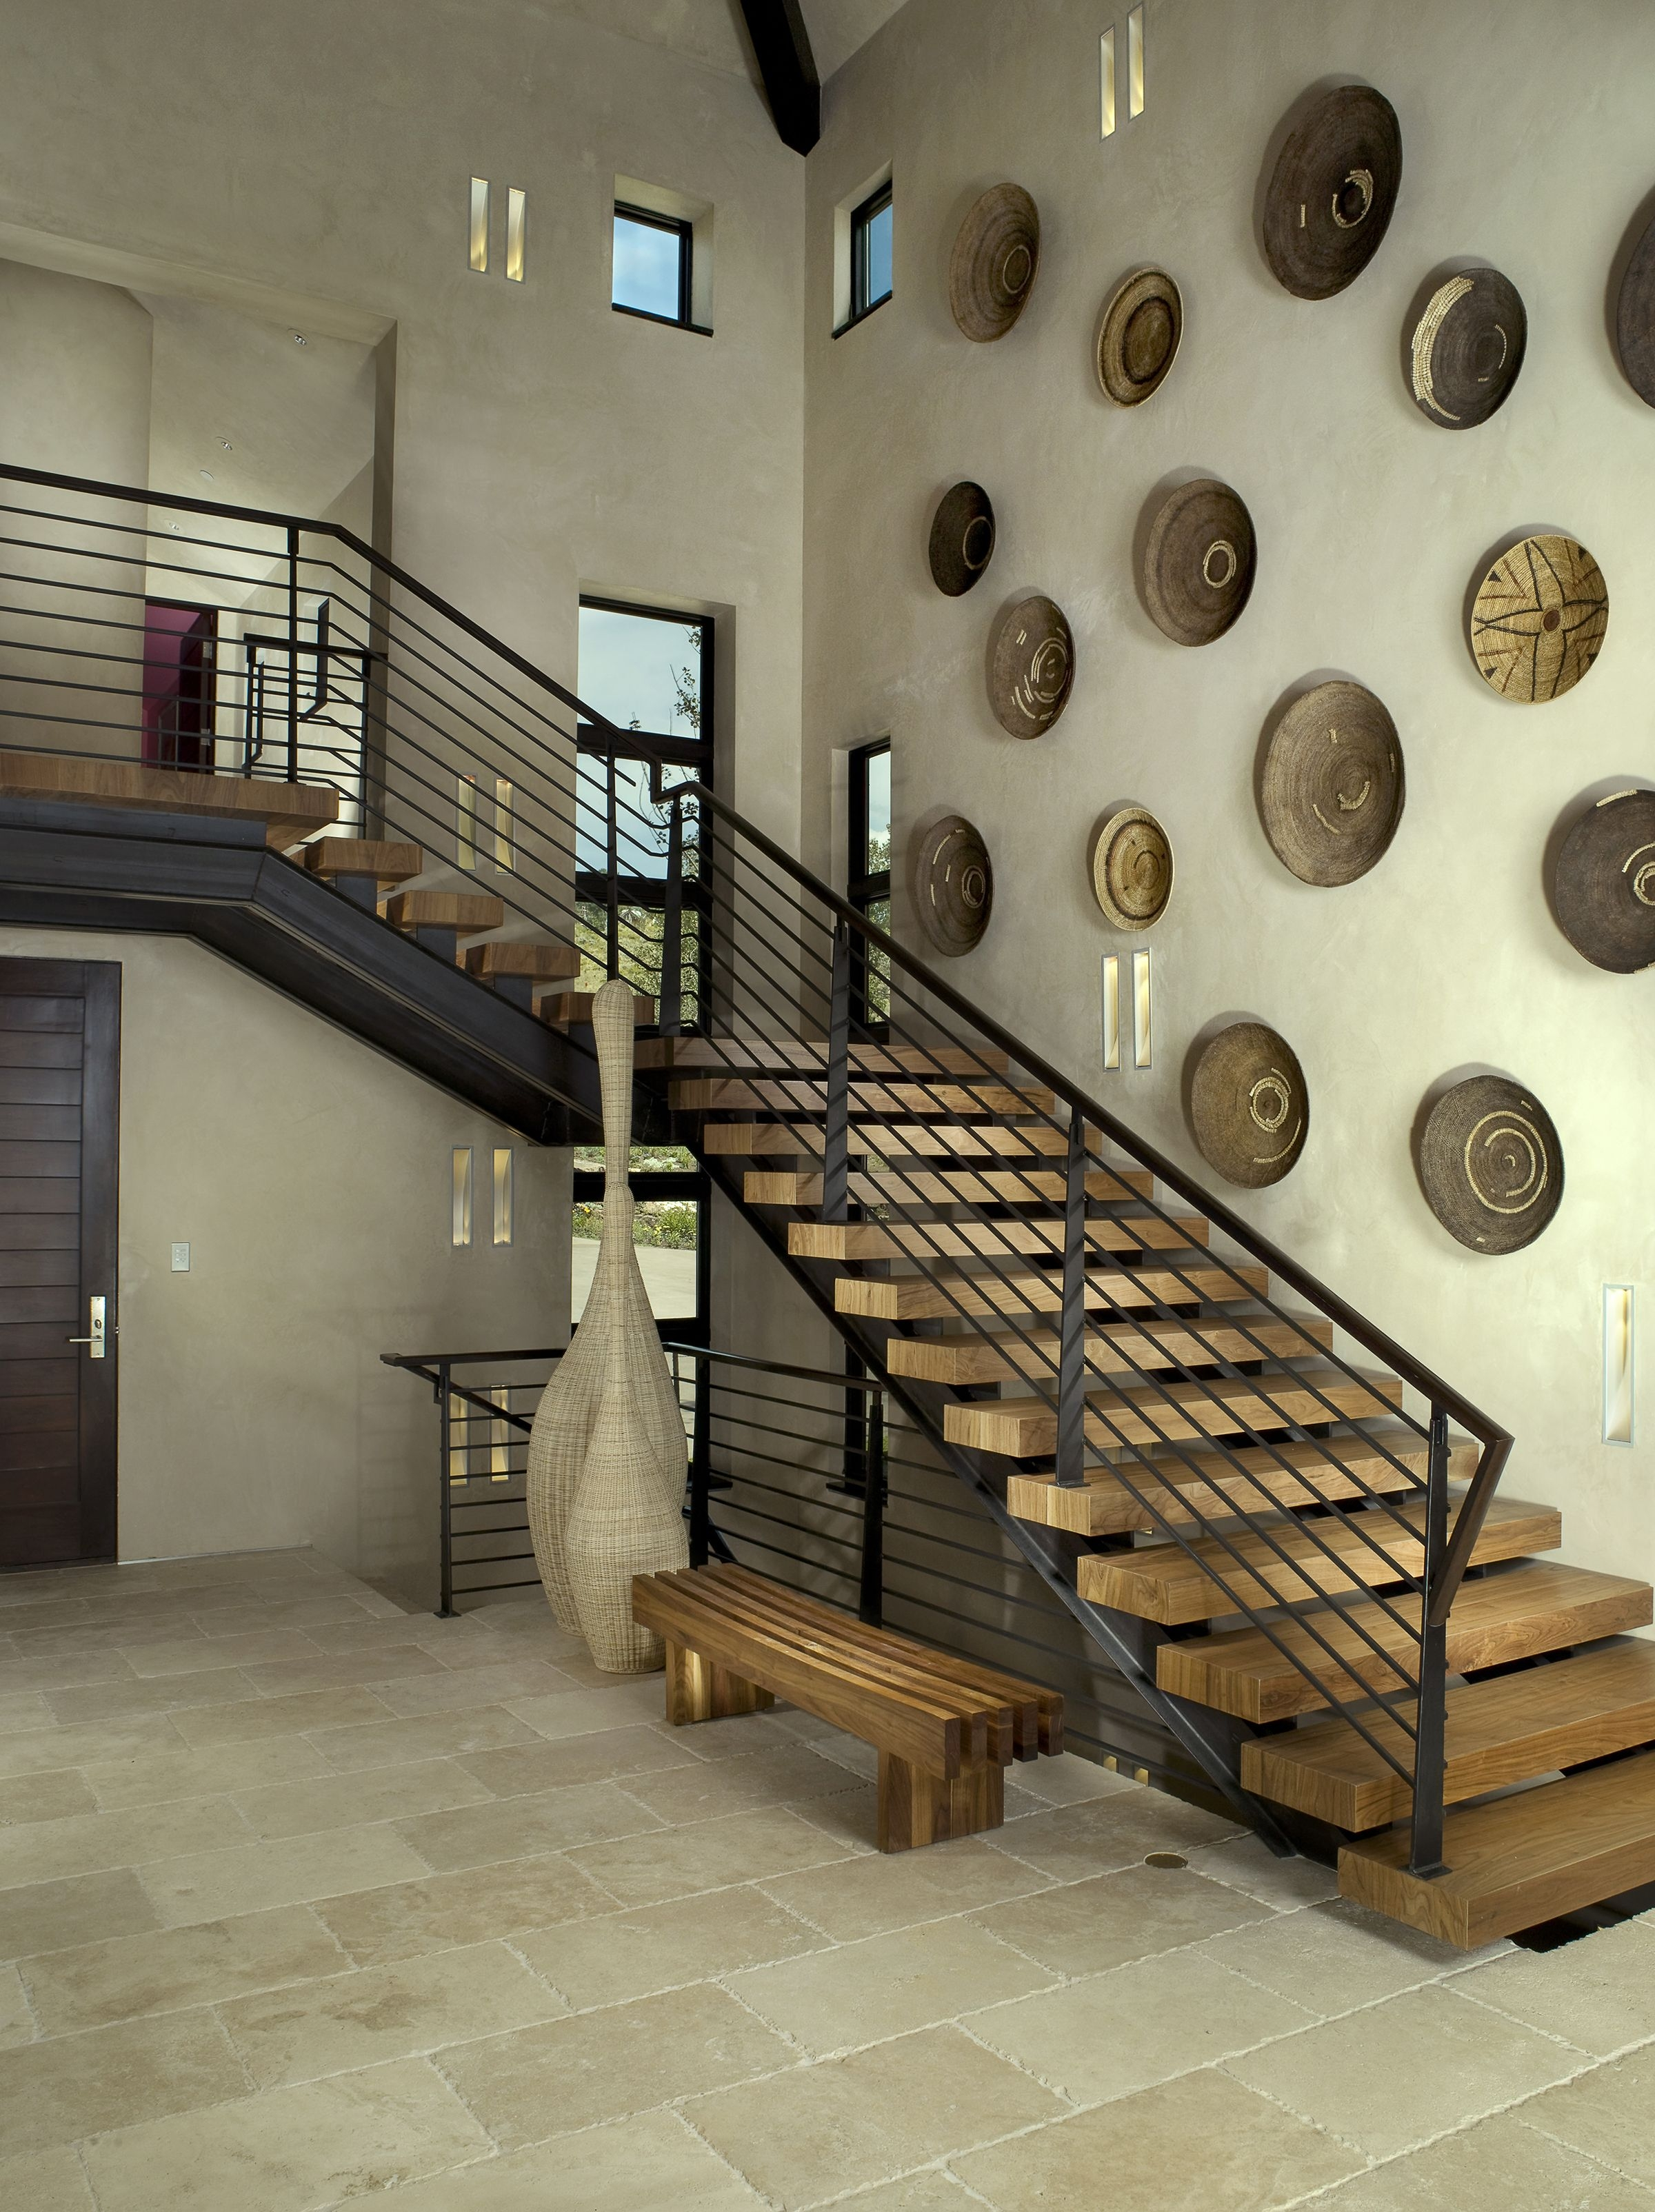 27 Stylish Staircase Decorating Ideas How To Decorate Stairways | Interior Staircase Design In Main Hall For Duplex House | Residential Stair | Middle Class Village Indian House | View | 16X16 Hall | Beautiful